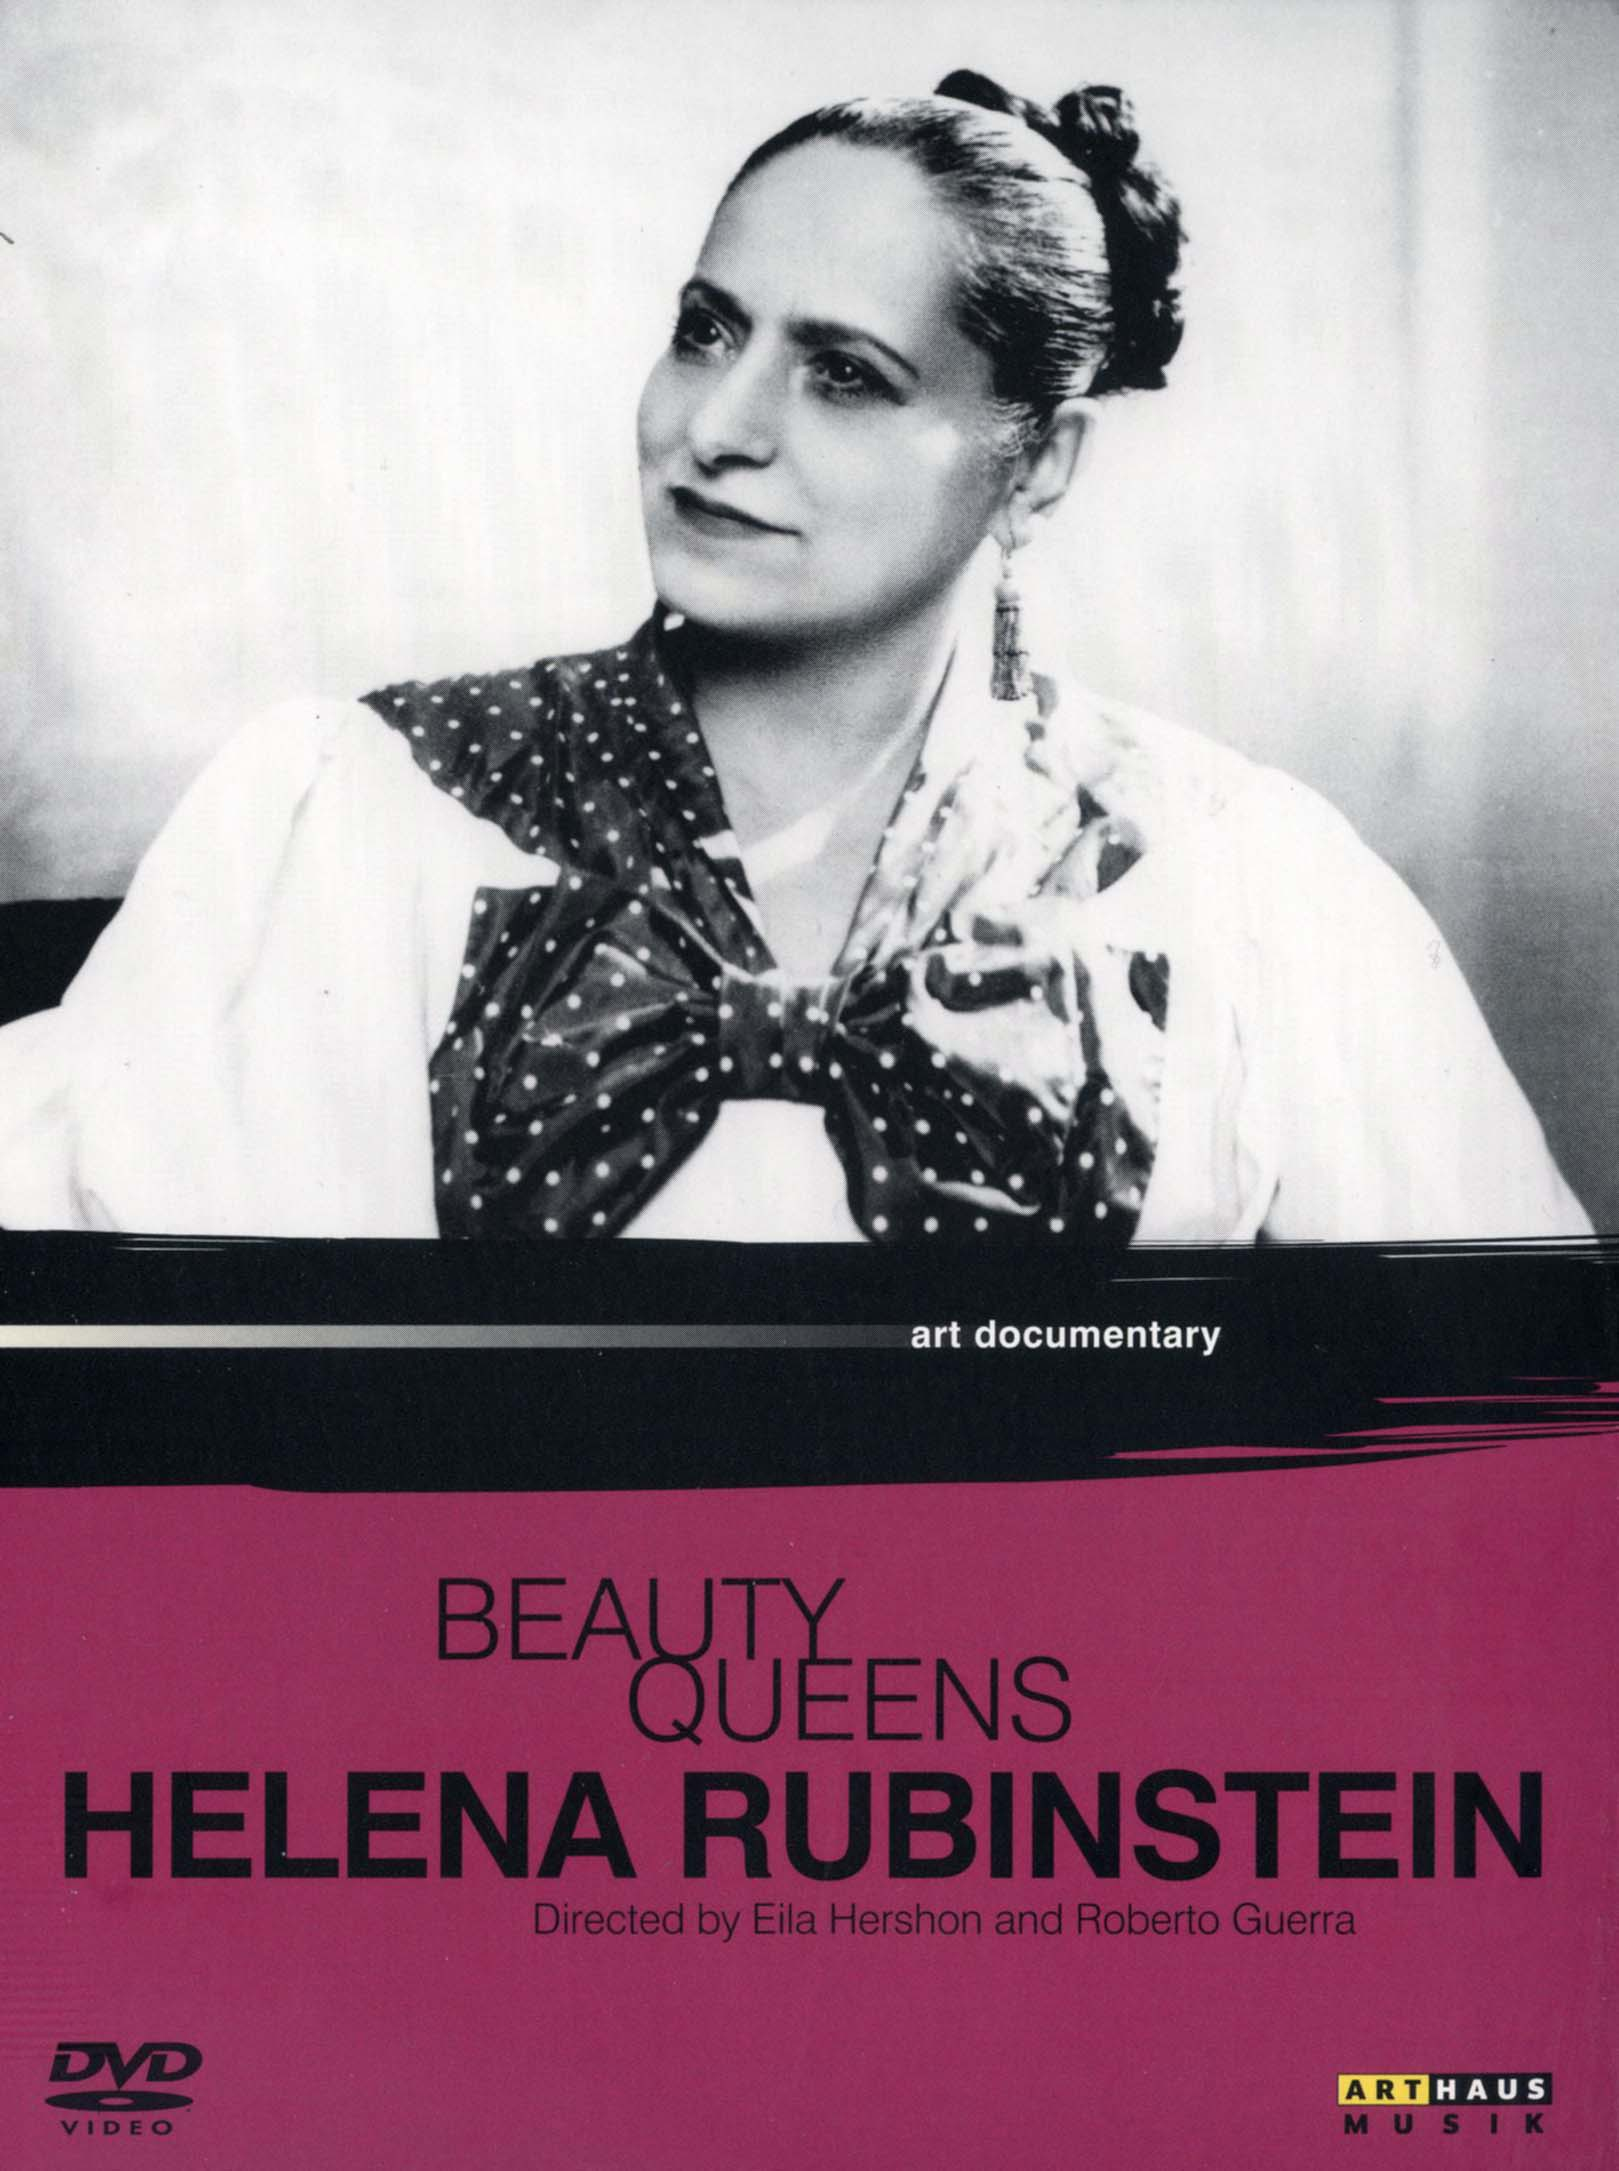 Helena Rubinstein: Beauty Queens